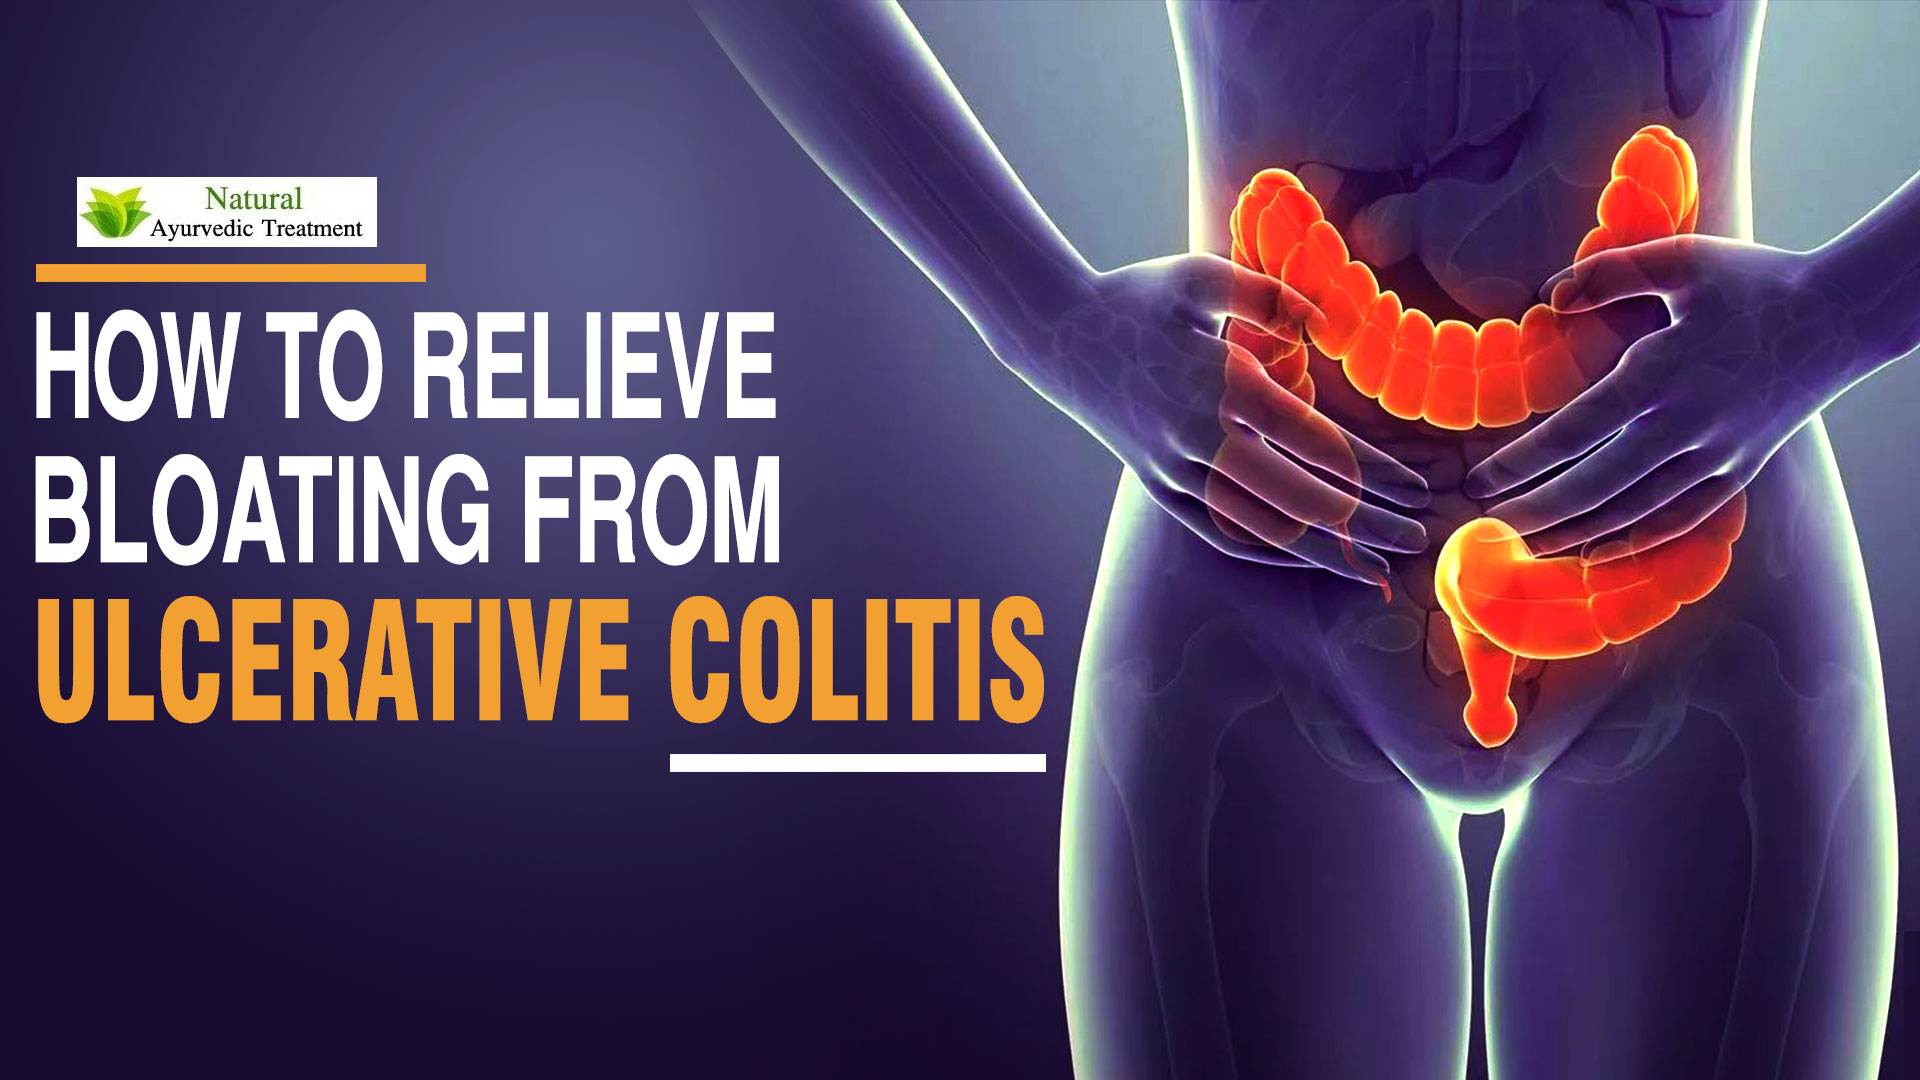 How to Relieve Bloating from Ulcerative Colitis?